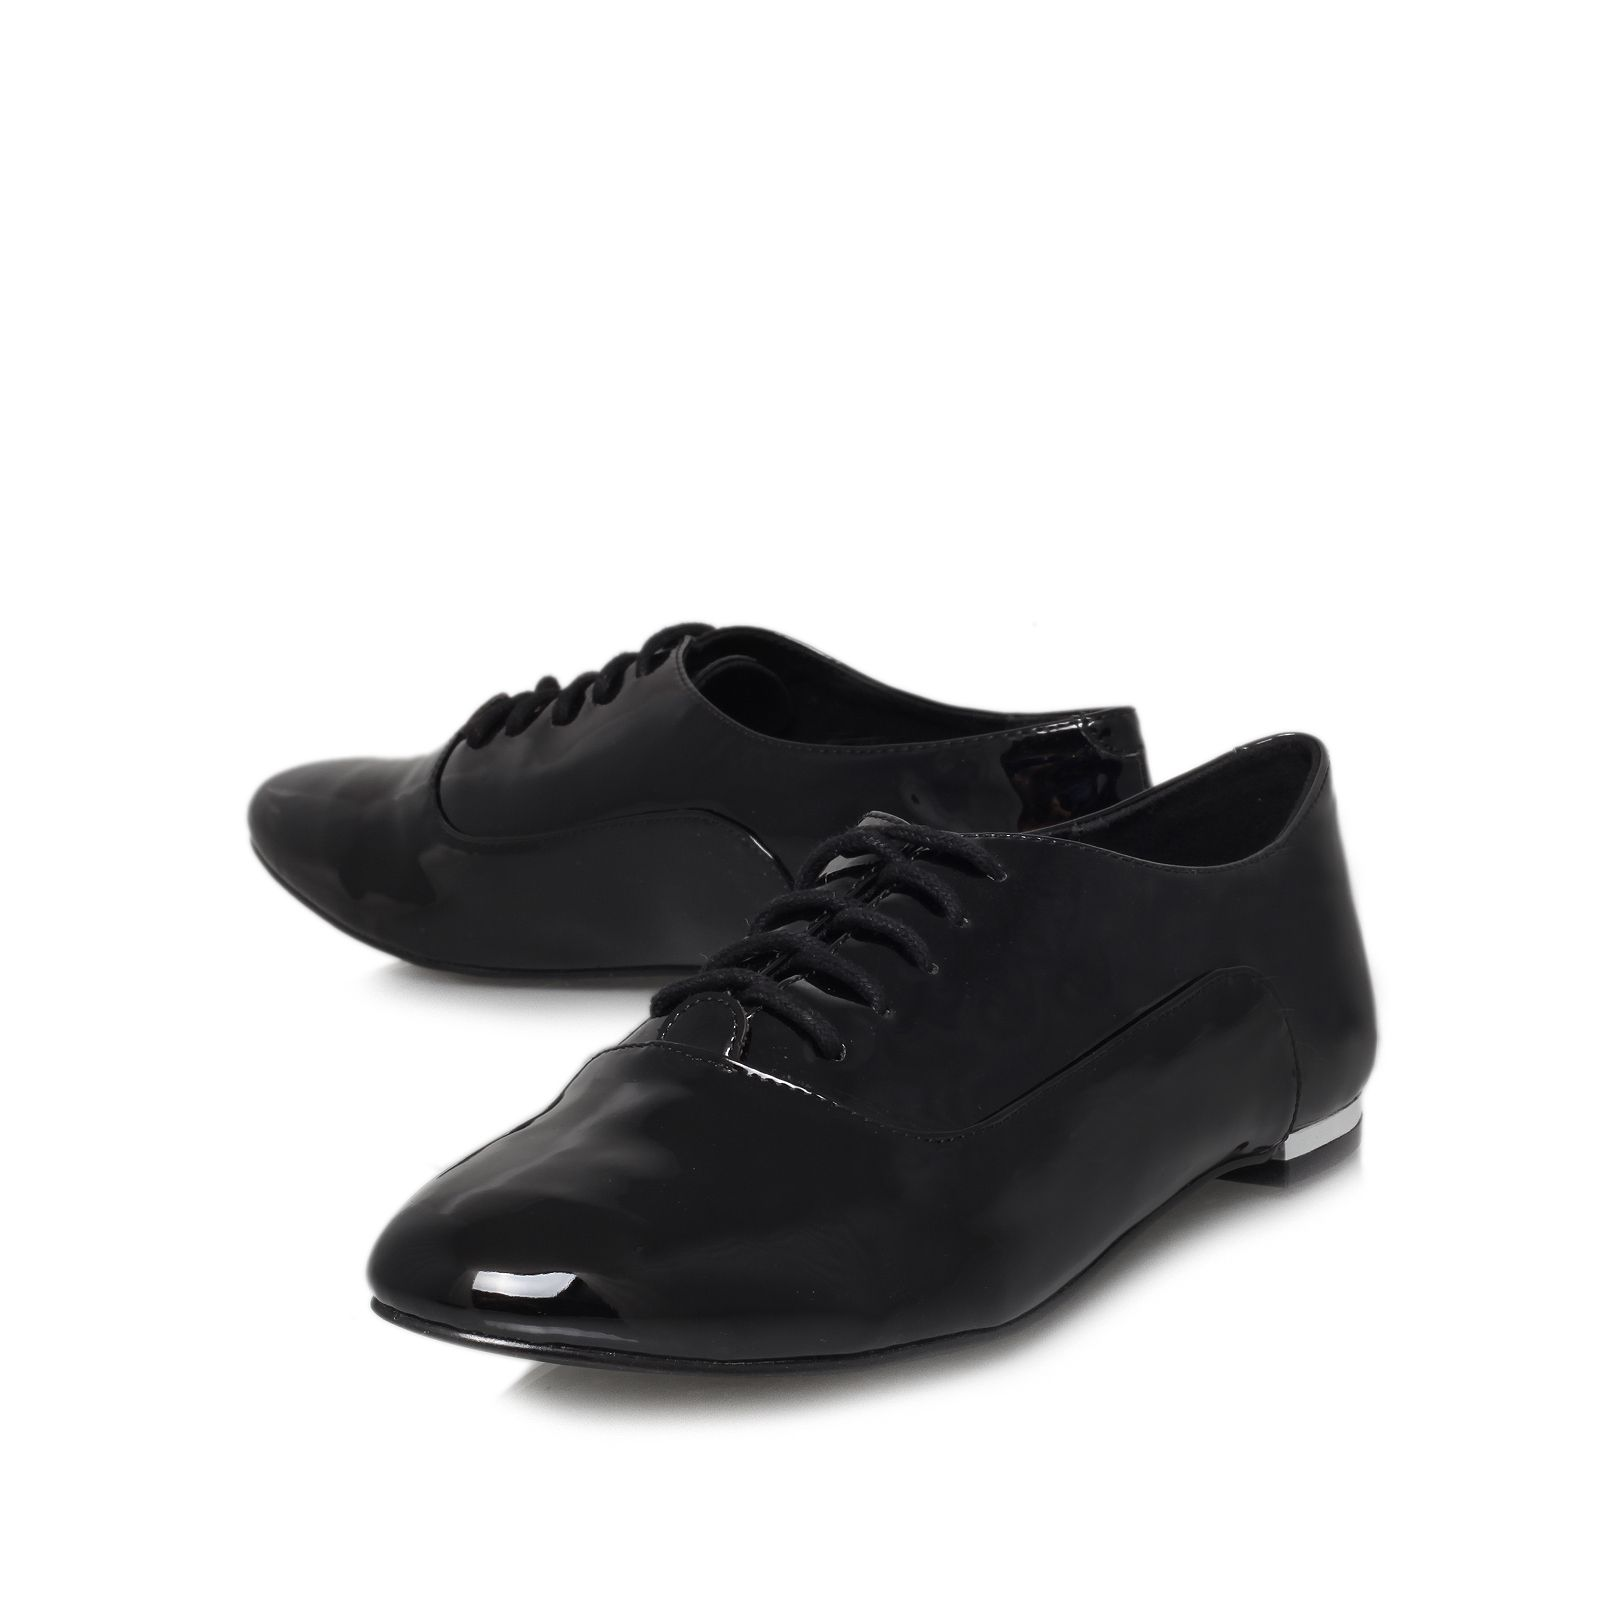 Luxe flat brogues